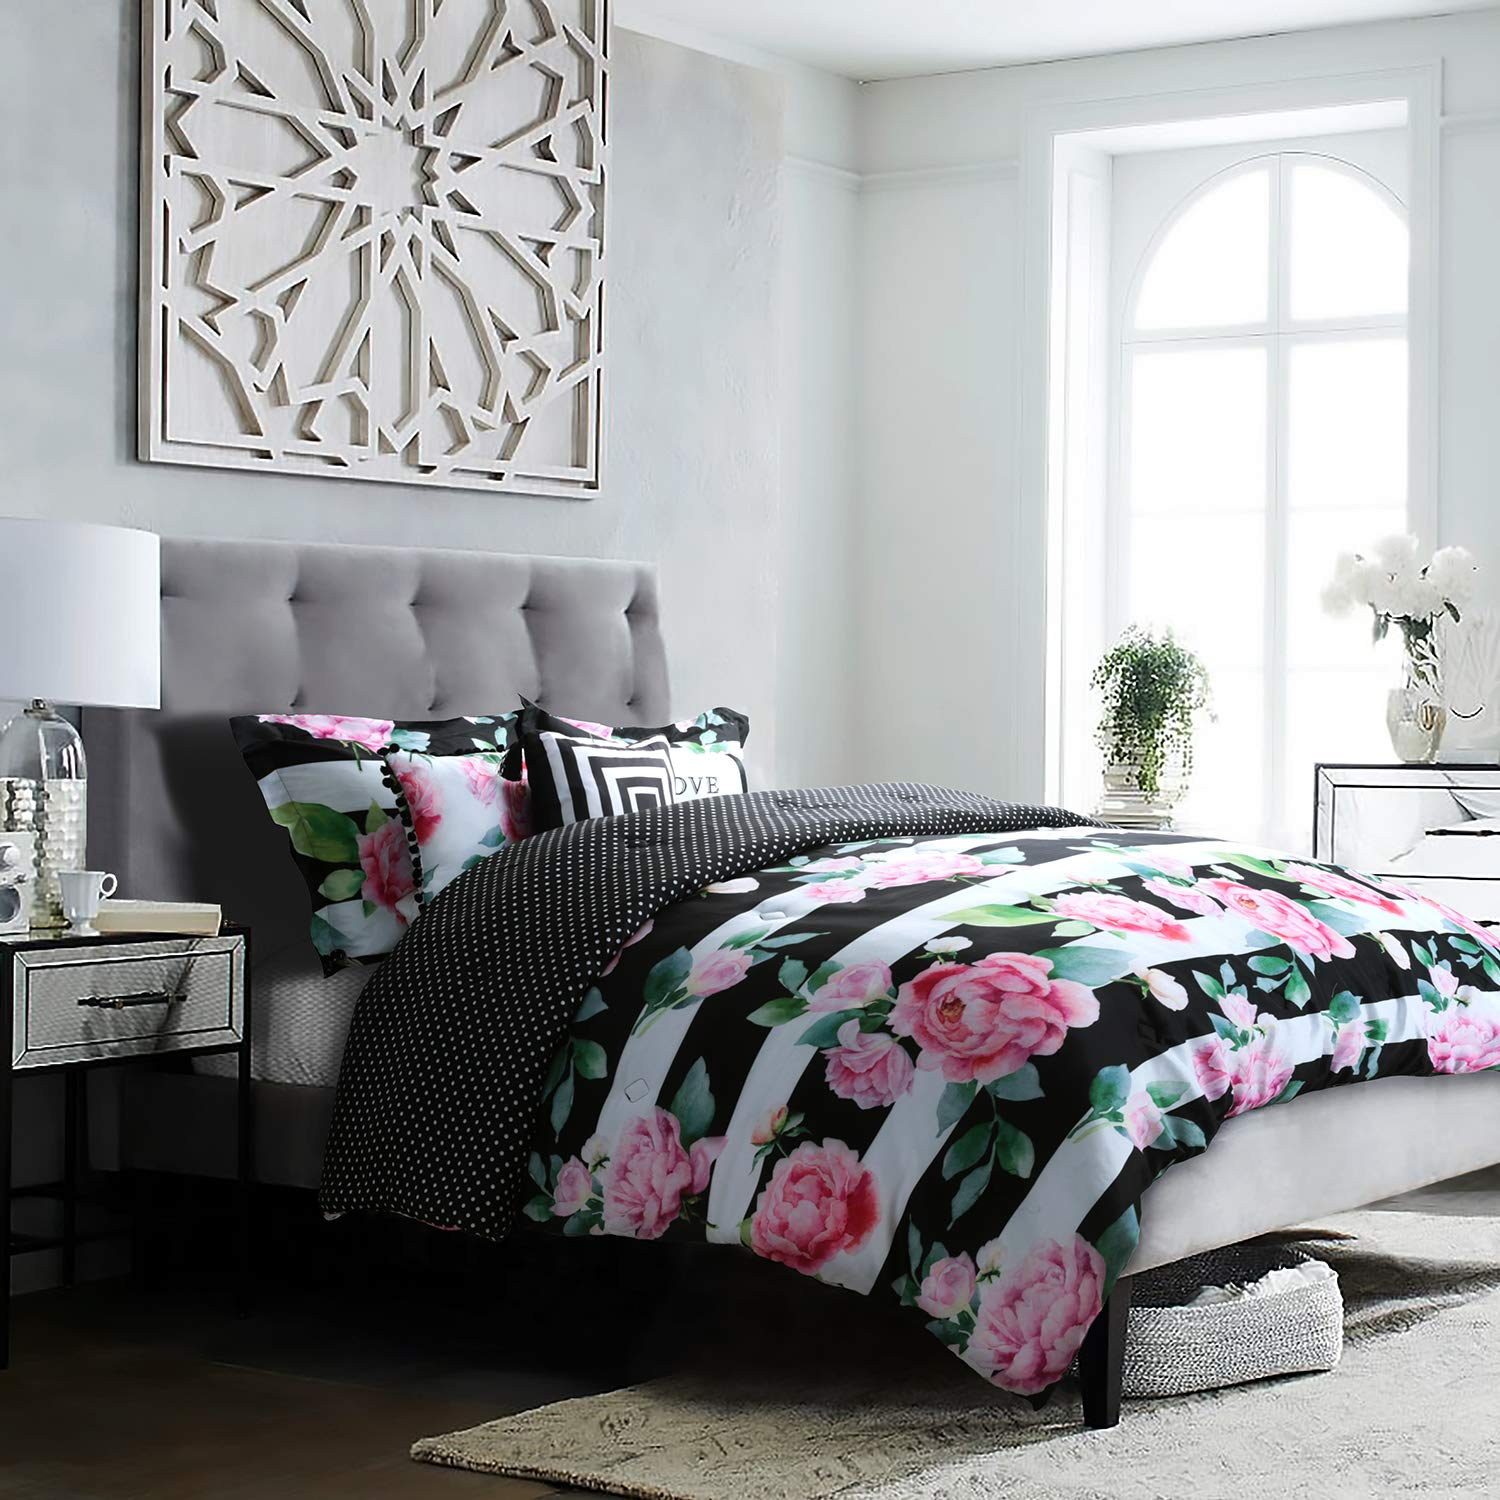 Studio8 brand - LOVE Printed Comforter Set - 6 Piece - Pinks/Greens/Black/White - Handpainted Floral Design - King/CalKing Size, Includes 1 Comforter, 2 Shams, 3 Decorative Pillows - Easy Care